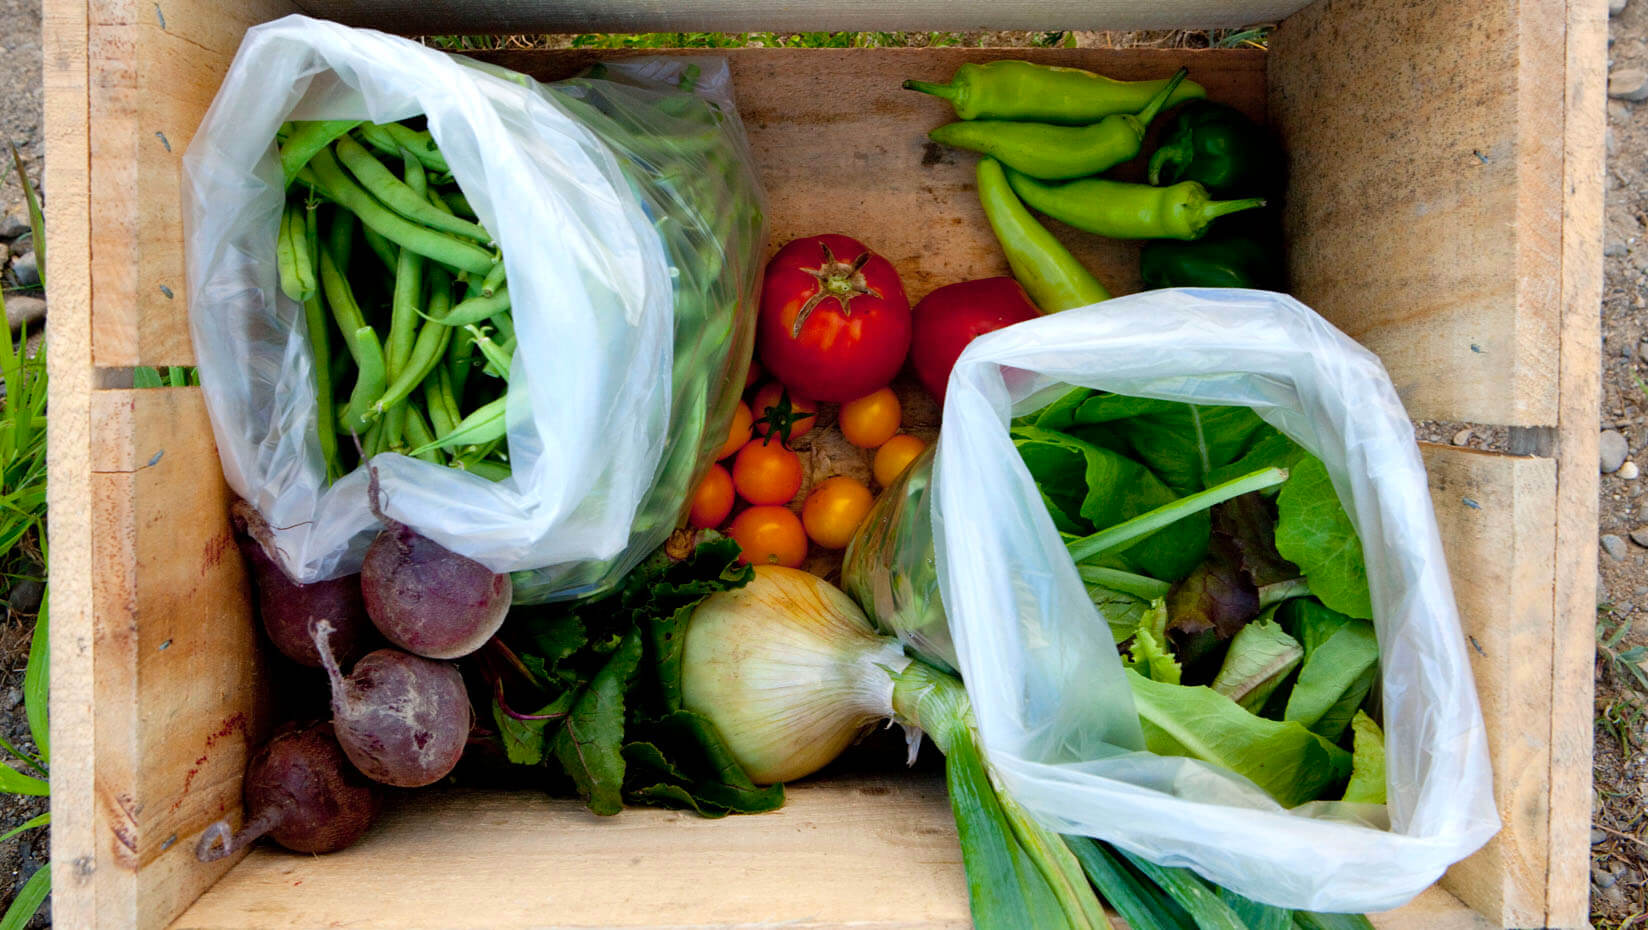 Fresh produce in a wooden box